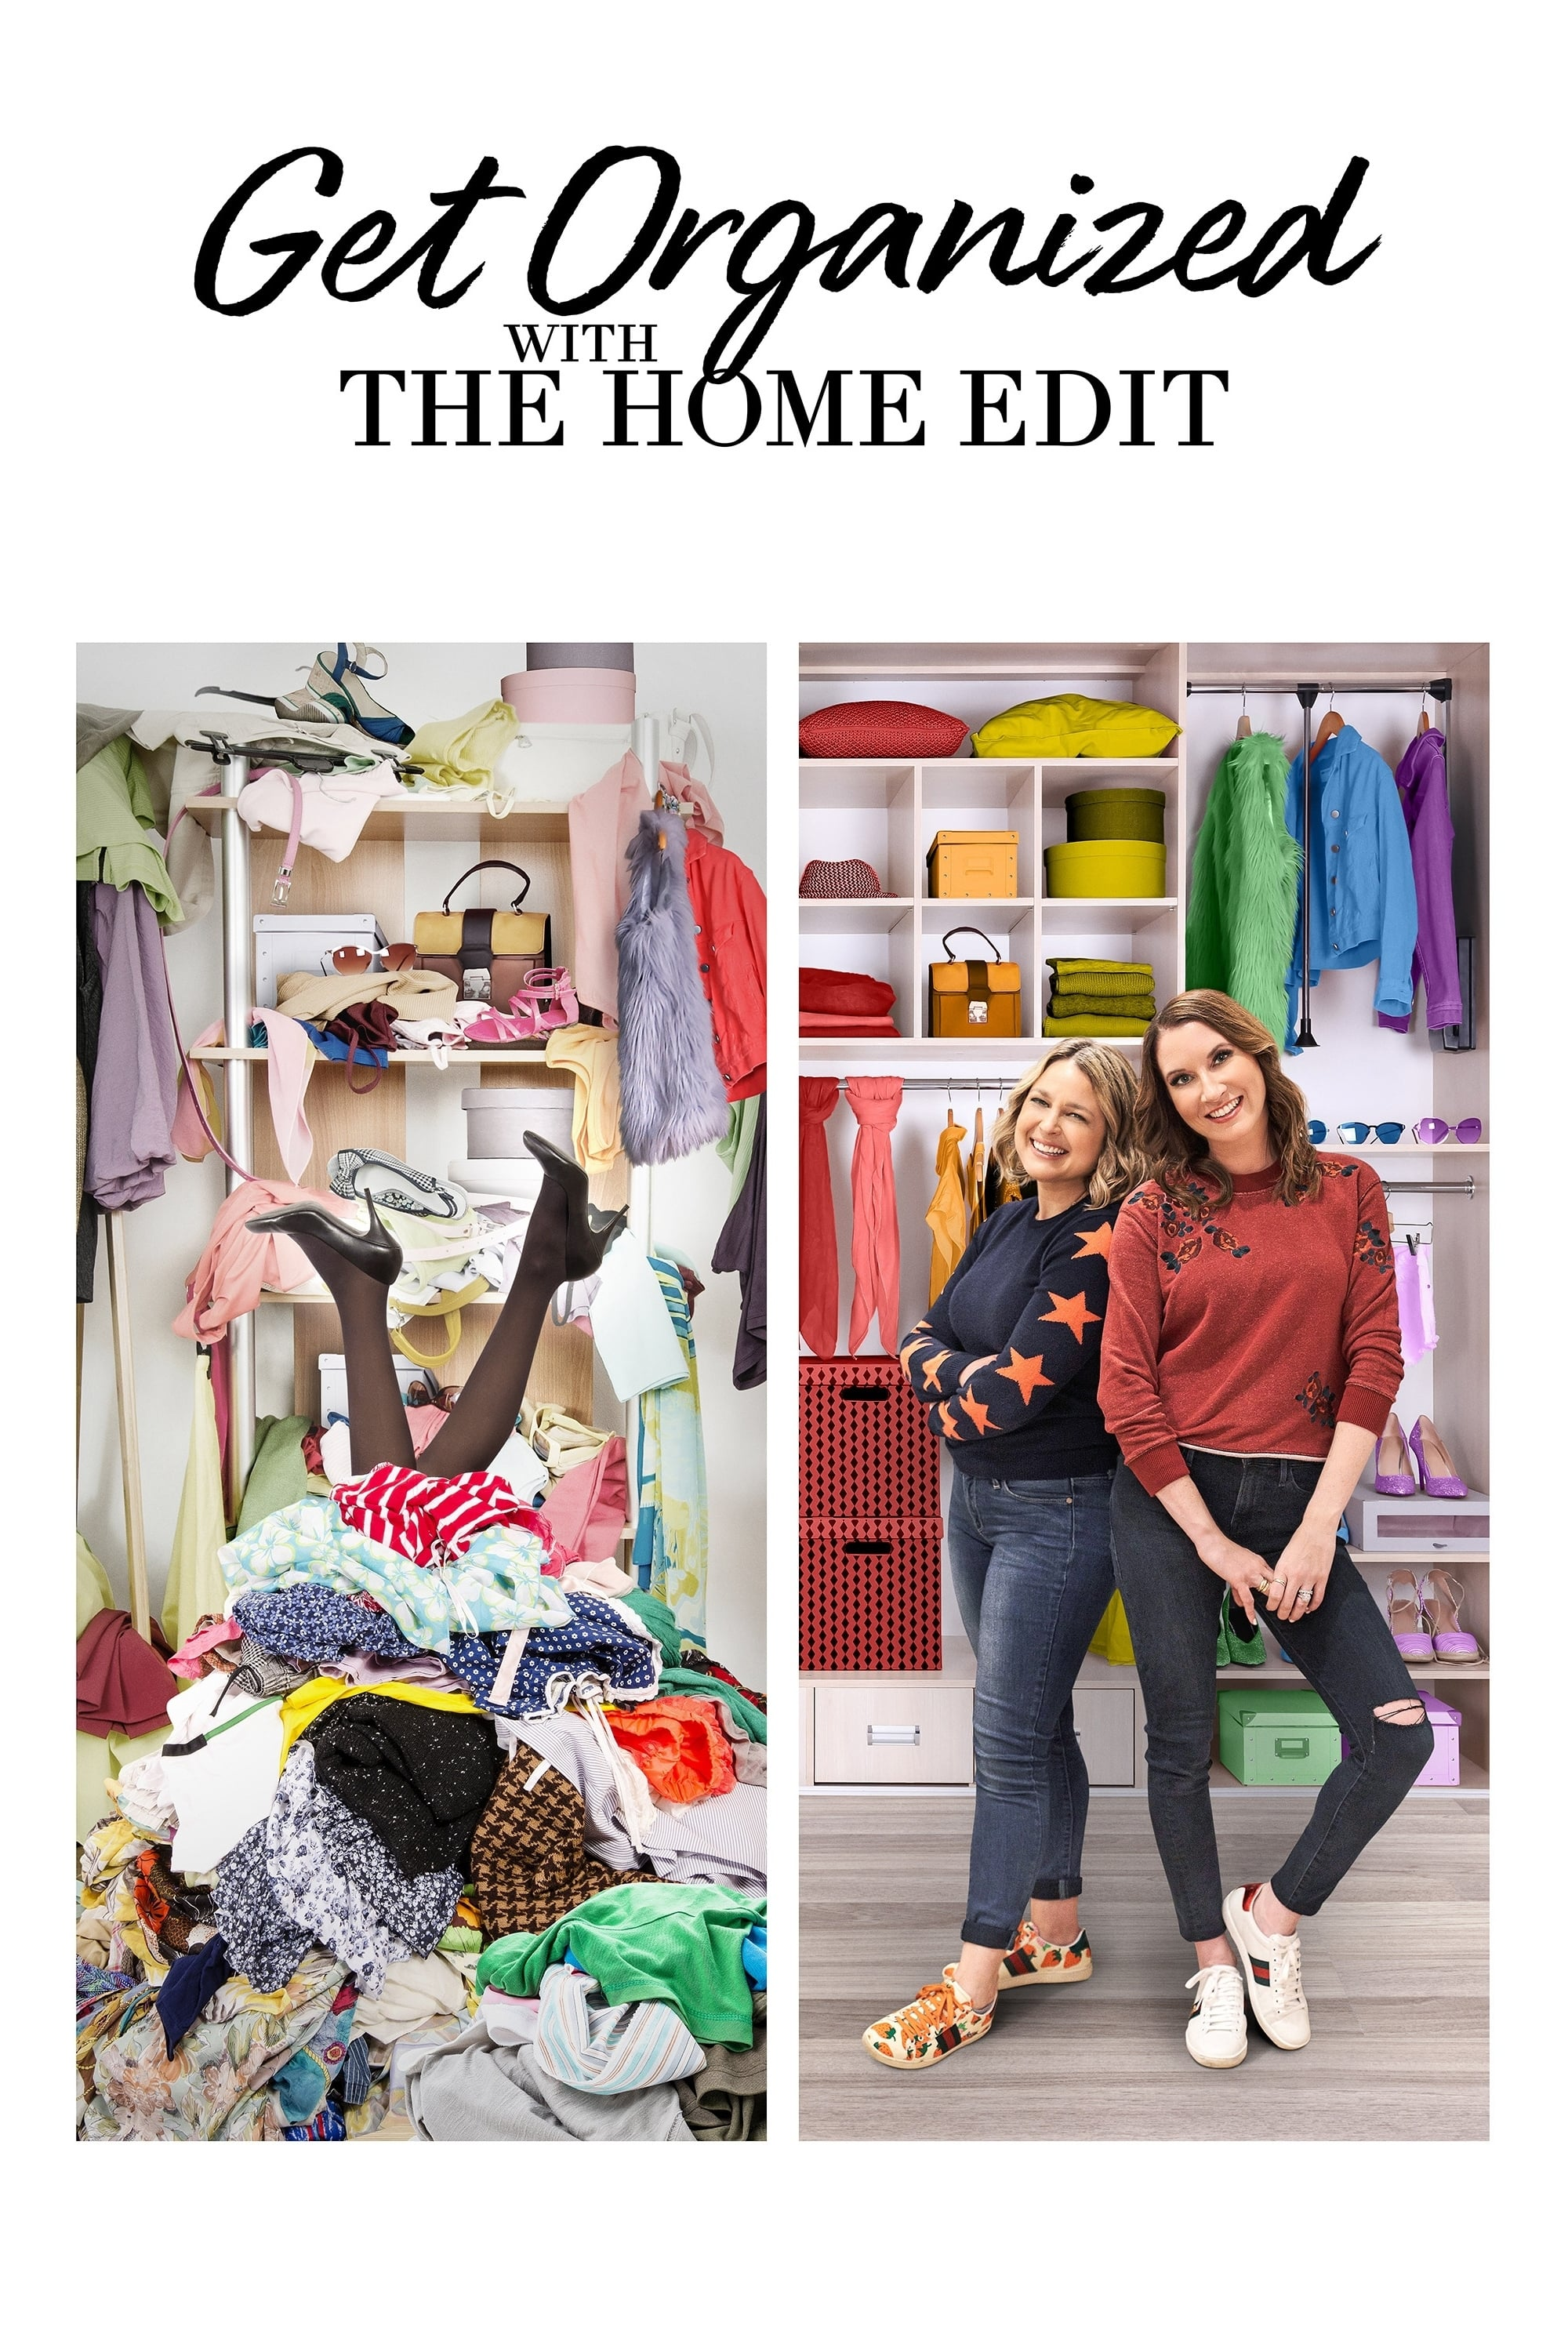 The Home Edit: Cada cosa en su lugar